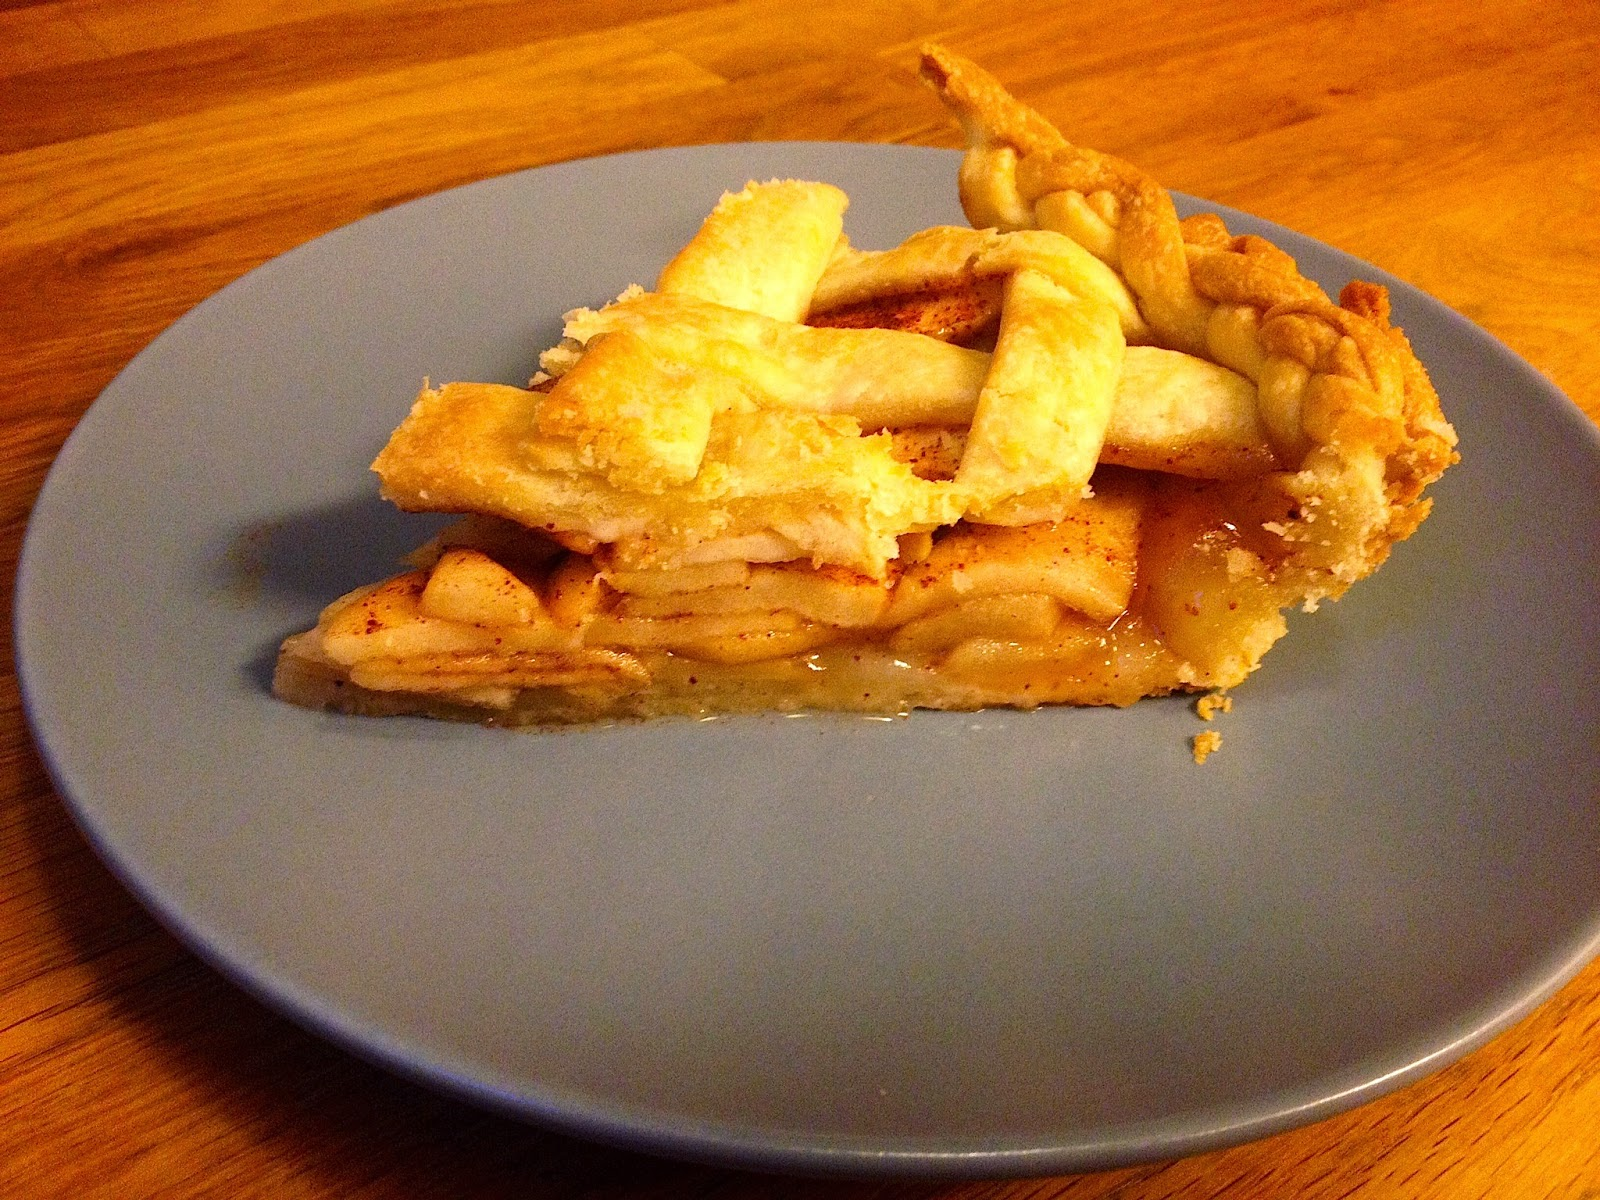 lattice crust homemade apple pie recipe